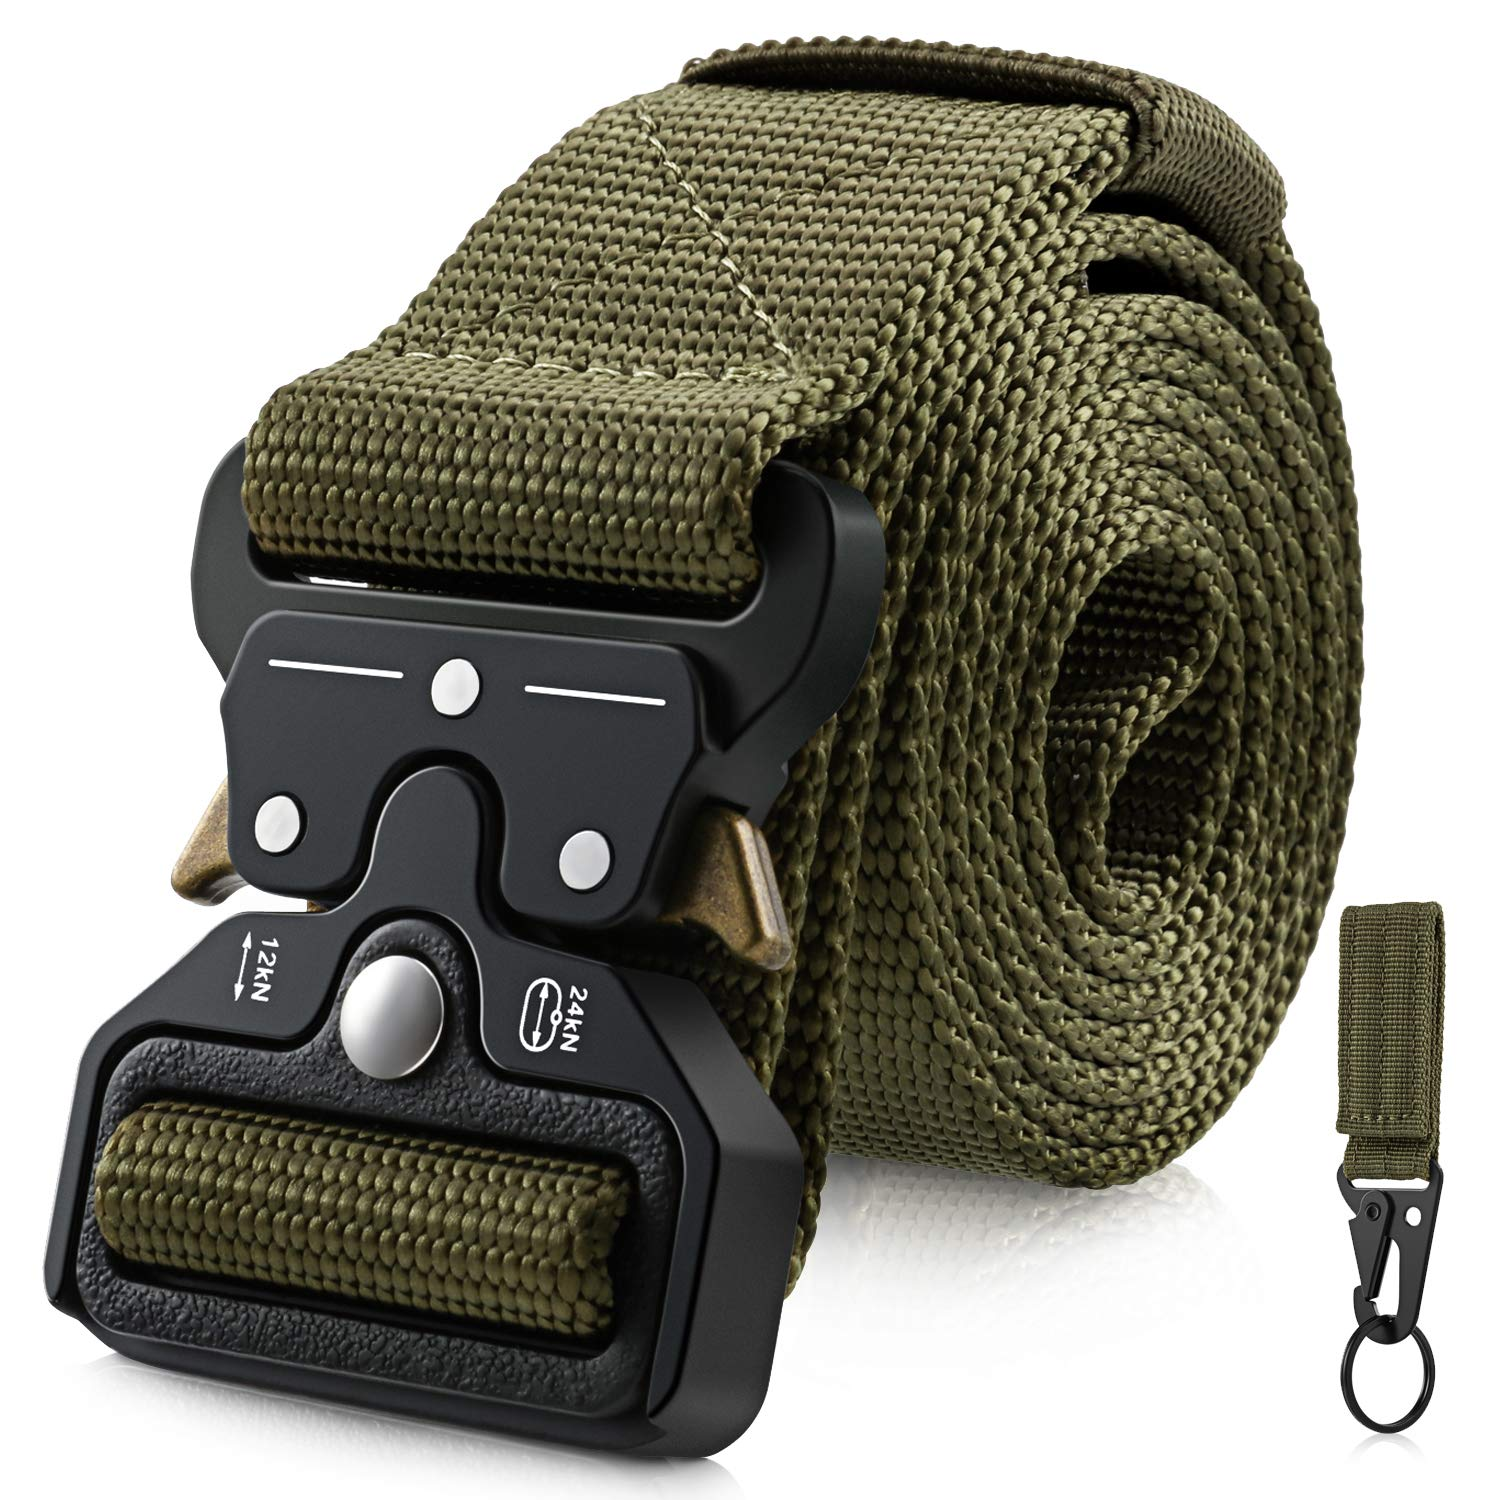 Barbarians Tactical Belt for Men, 1.5 Inch Heavy-Duty Webbing Belt Adjustable Military Style Nylon Belts with Metal Buckle & Key Buckle